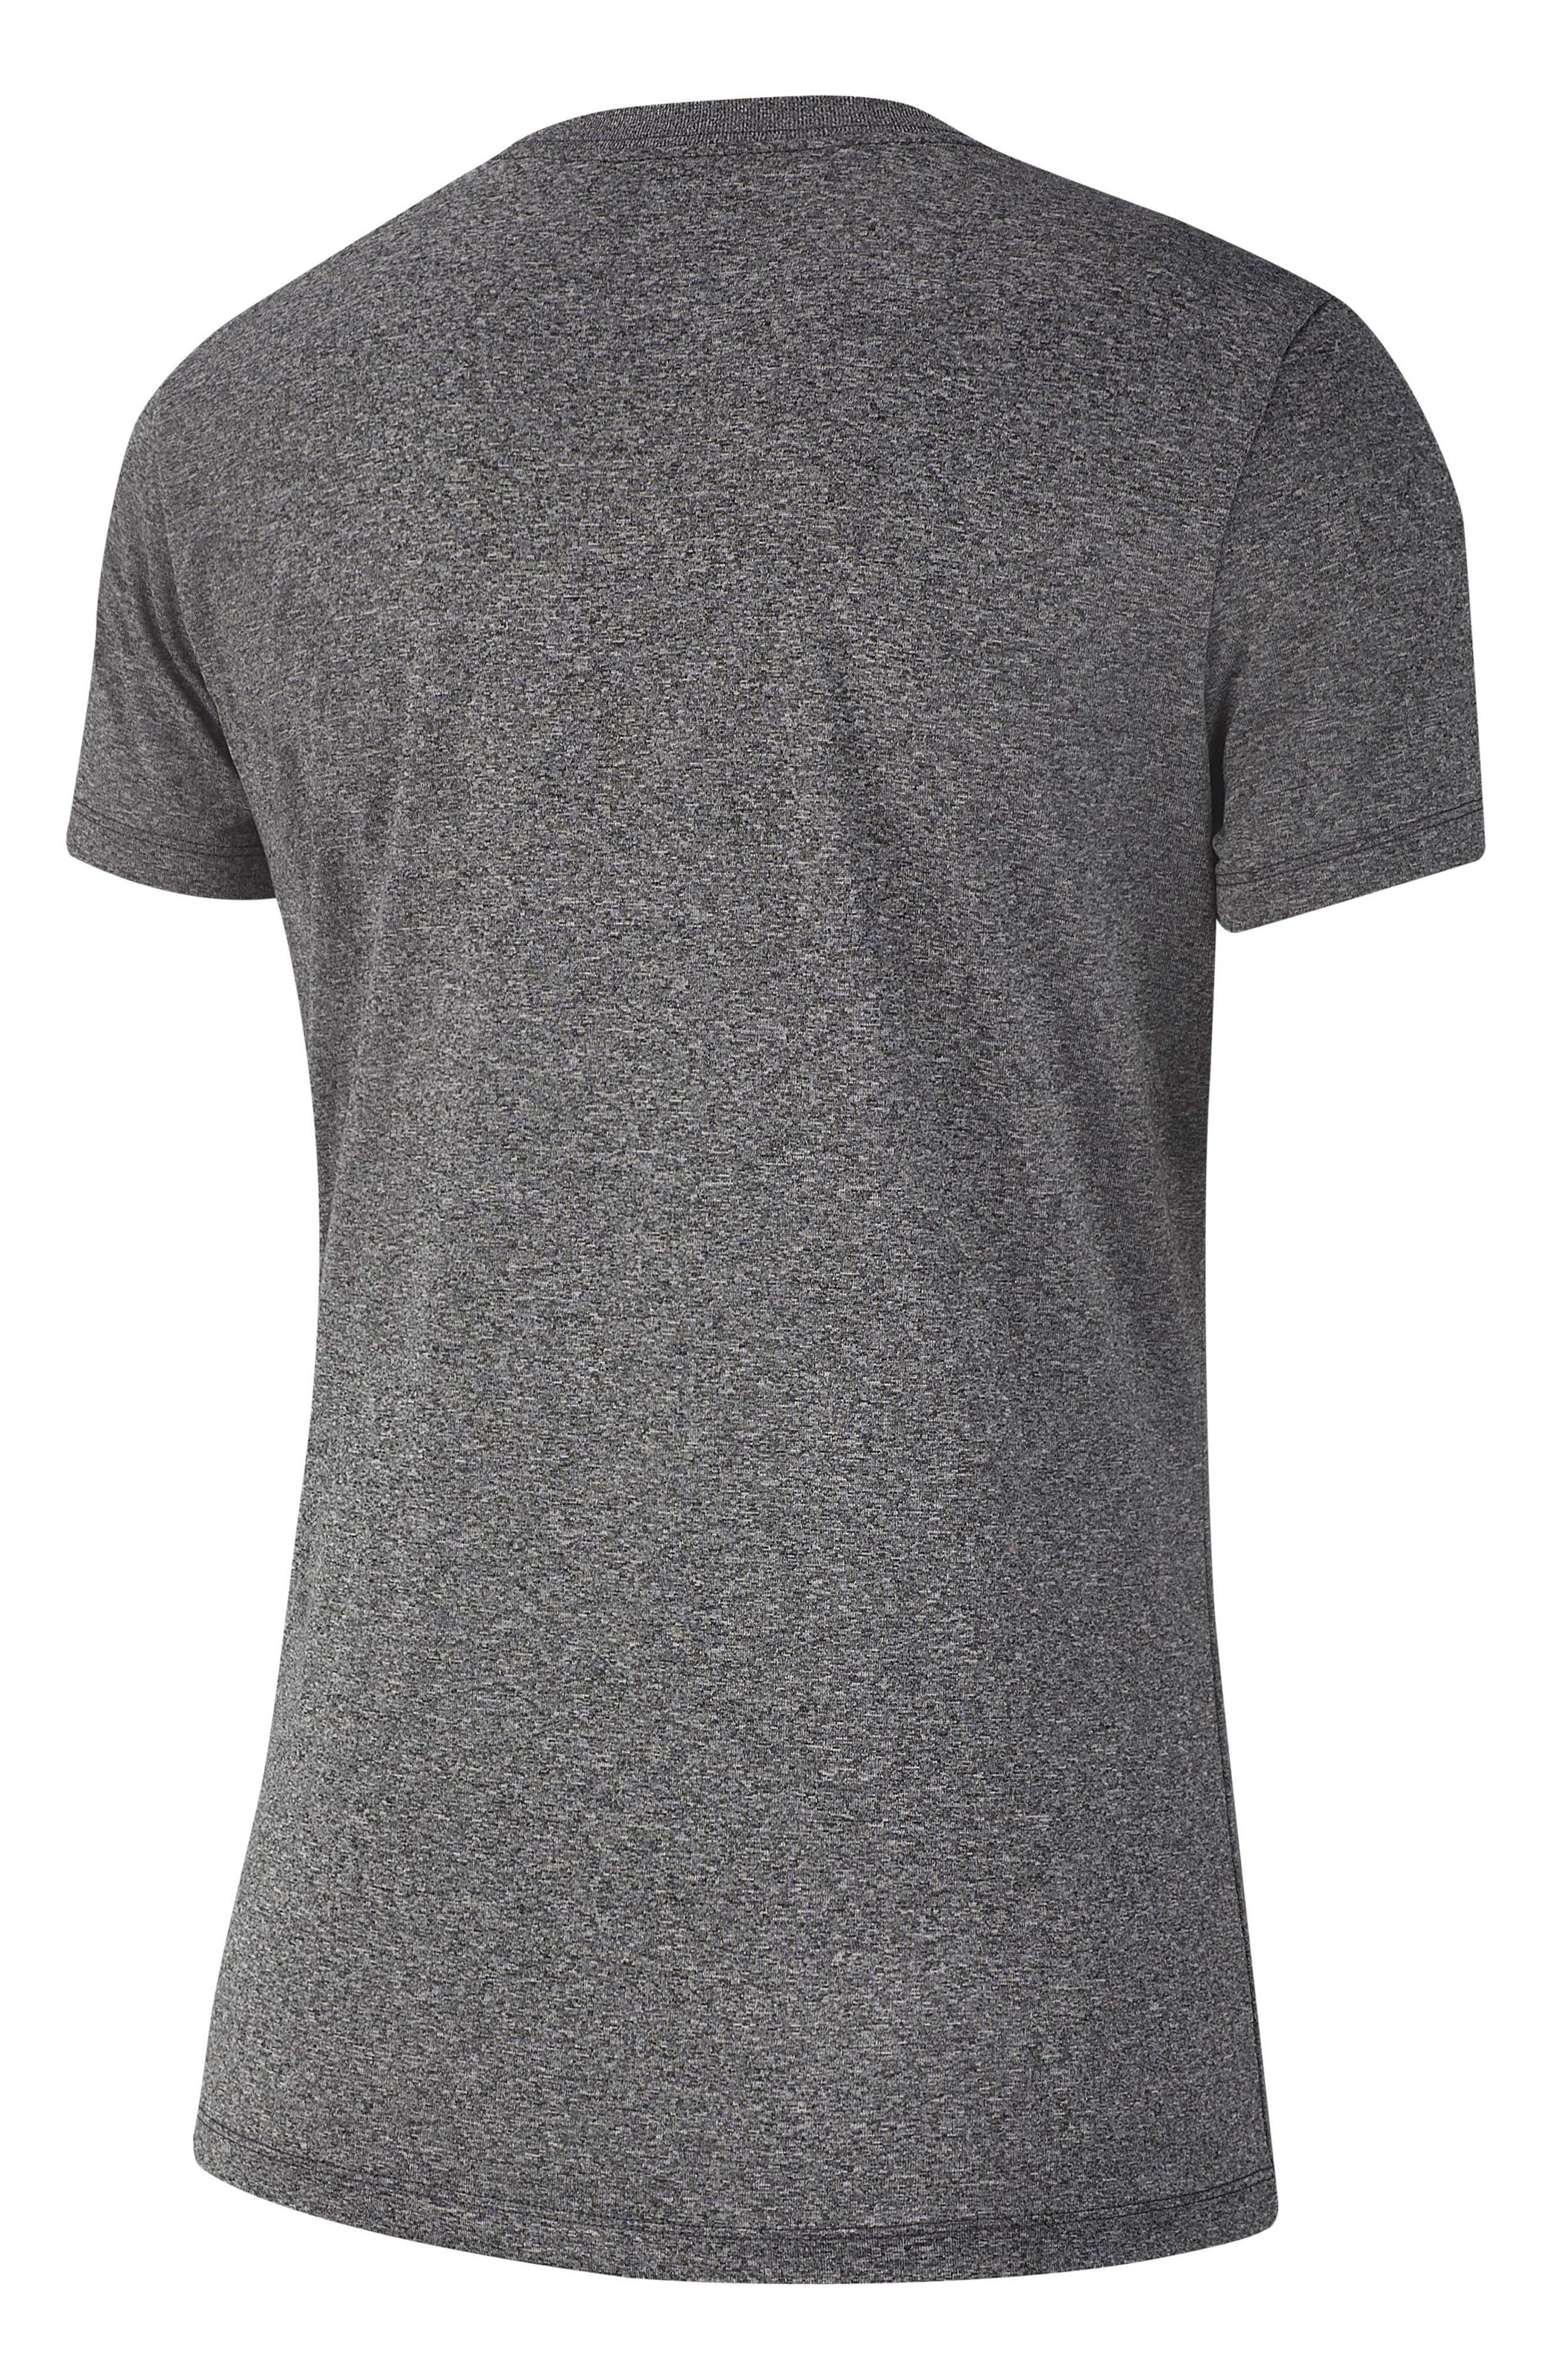 NIKE, Dry Legend Training Tee, Alternate thumbnail 2, color, BLACK/ HEATHER